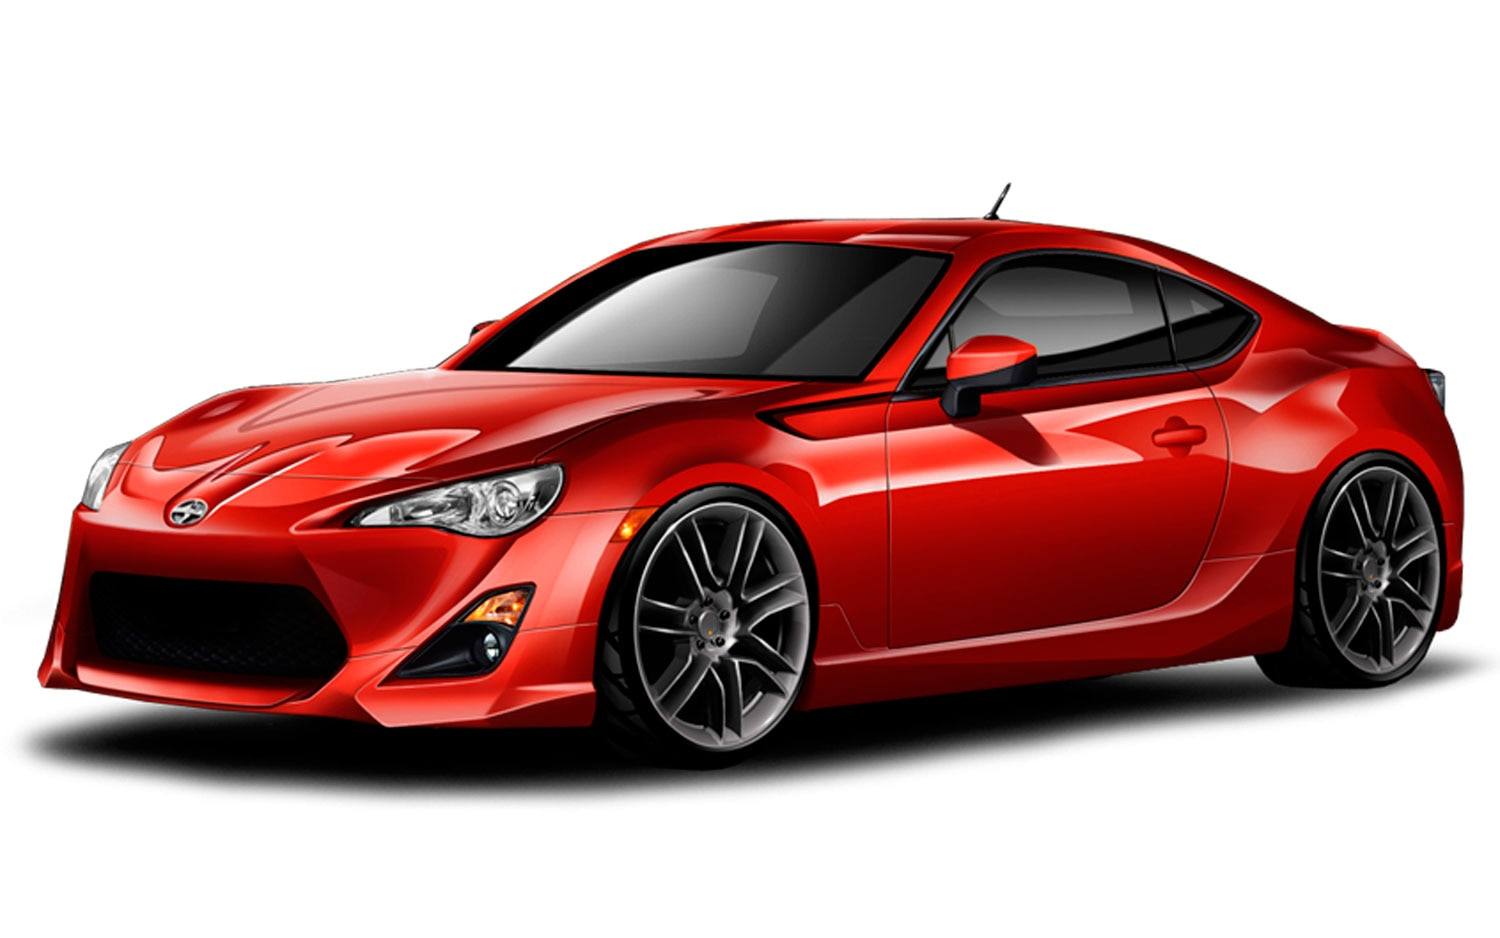 scion fr kit axis five body aero ad parts performance frs toyota bodykit asphalt soon gt front include released package